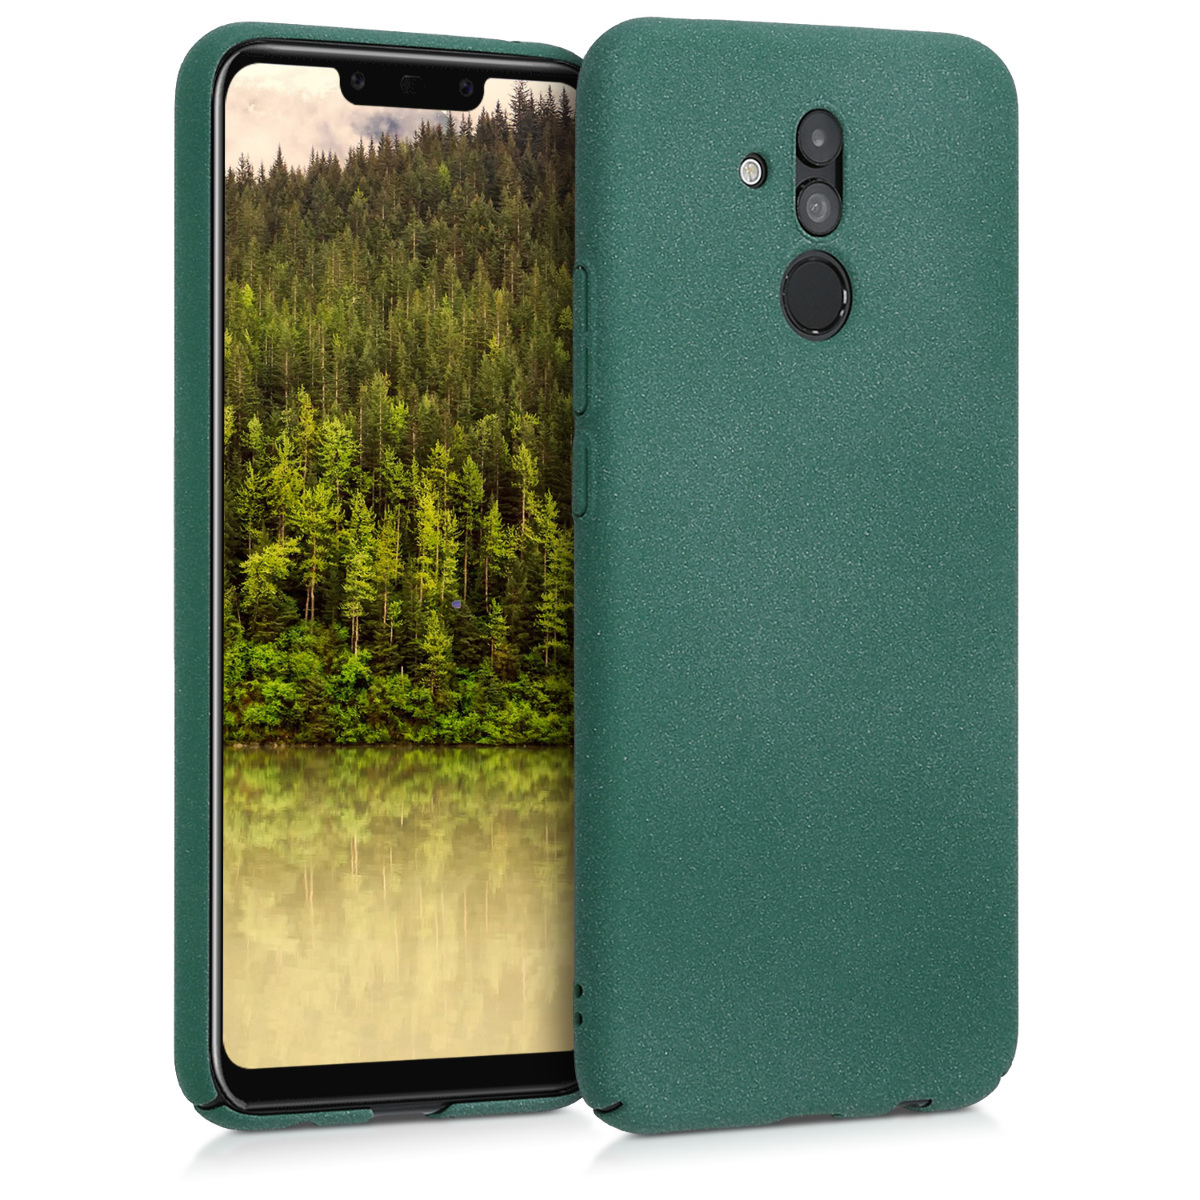 KW Σκληρή Θήκη Huawei Mate 20 Lite - Metallic Teal (47823.14)